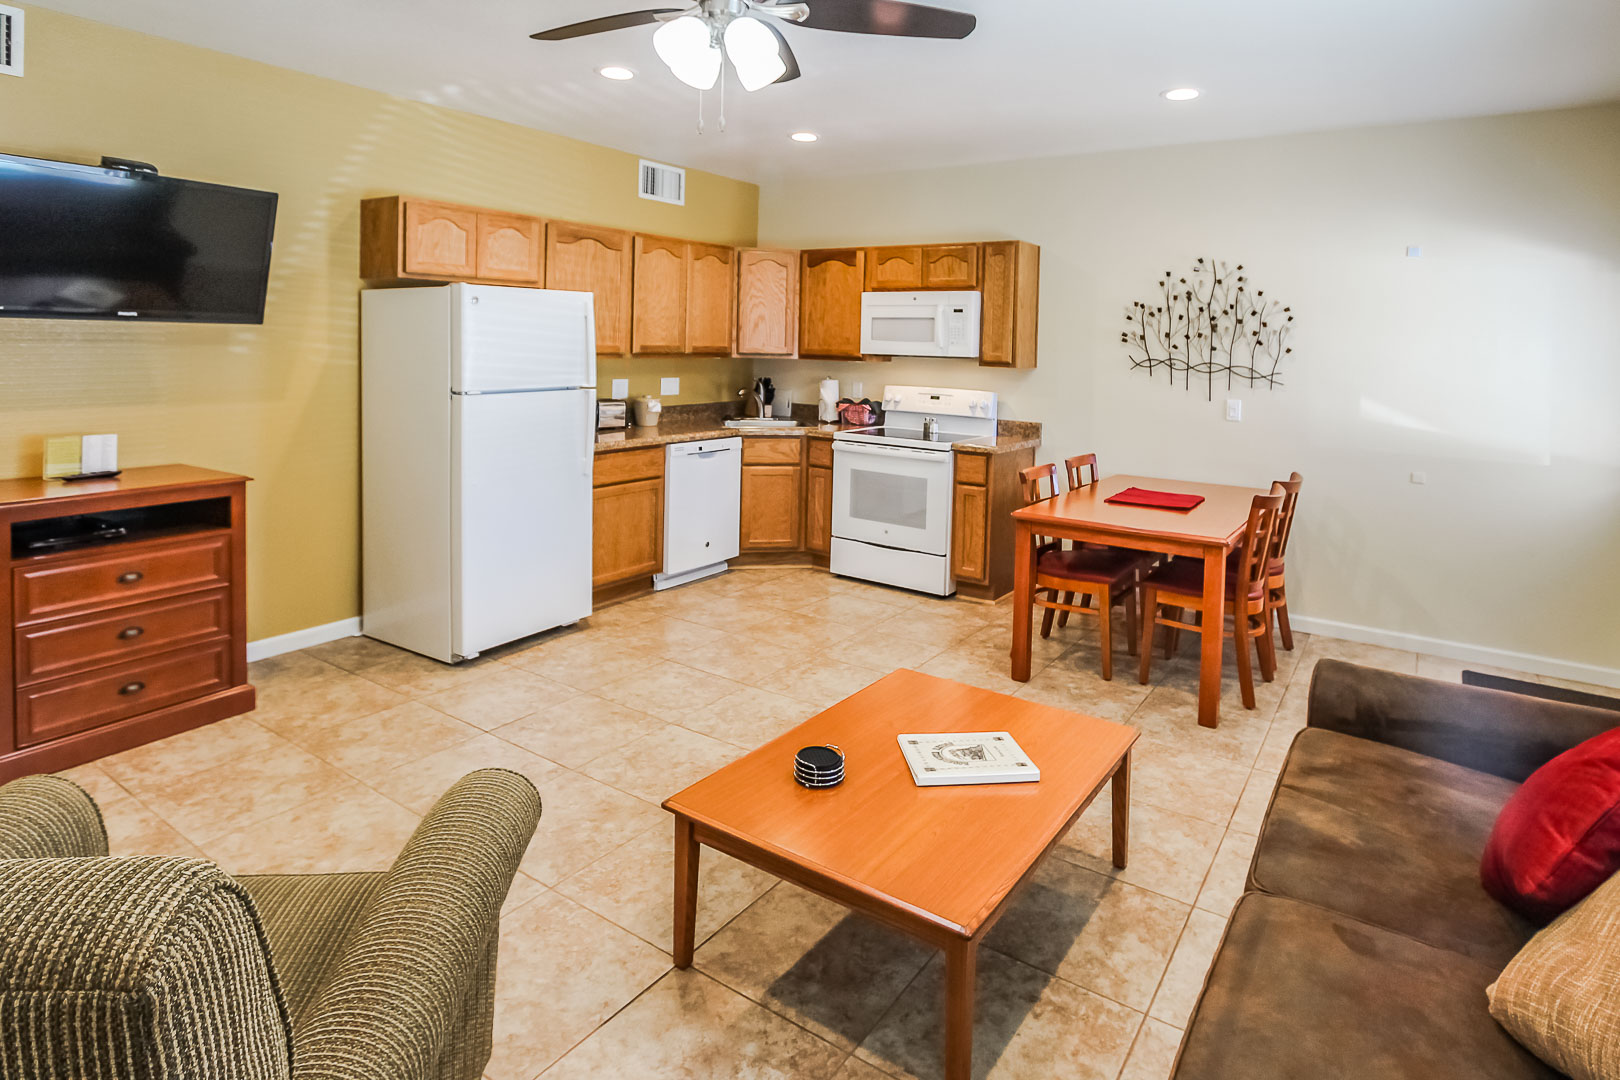 A full size kitchen and living room at VRI's Roundhouse Resort in Pinetop, Arizona.